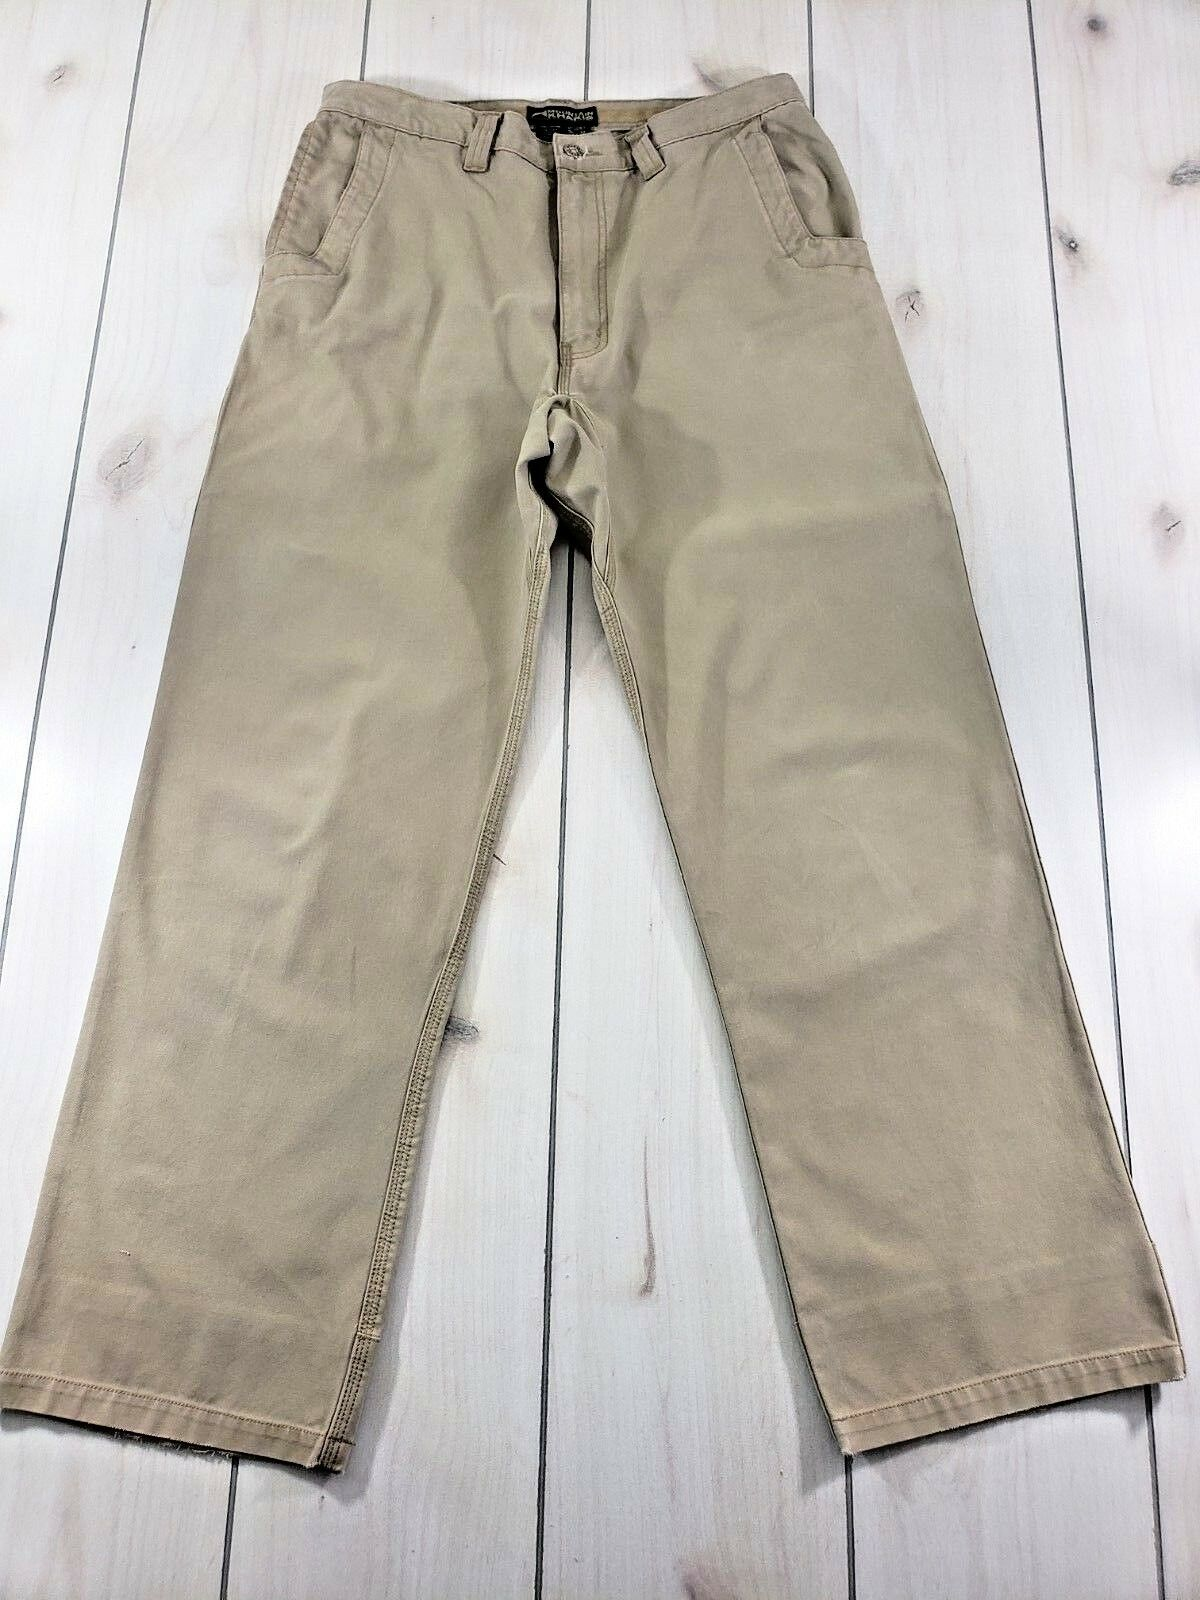 MOUNTAIN KHAKIS The Original Mountain Pant Gunmetal Men's 35.5x31.75  I88 MINT